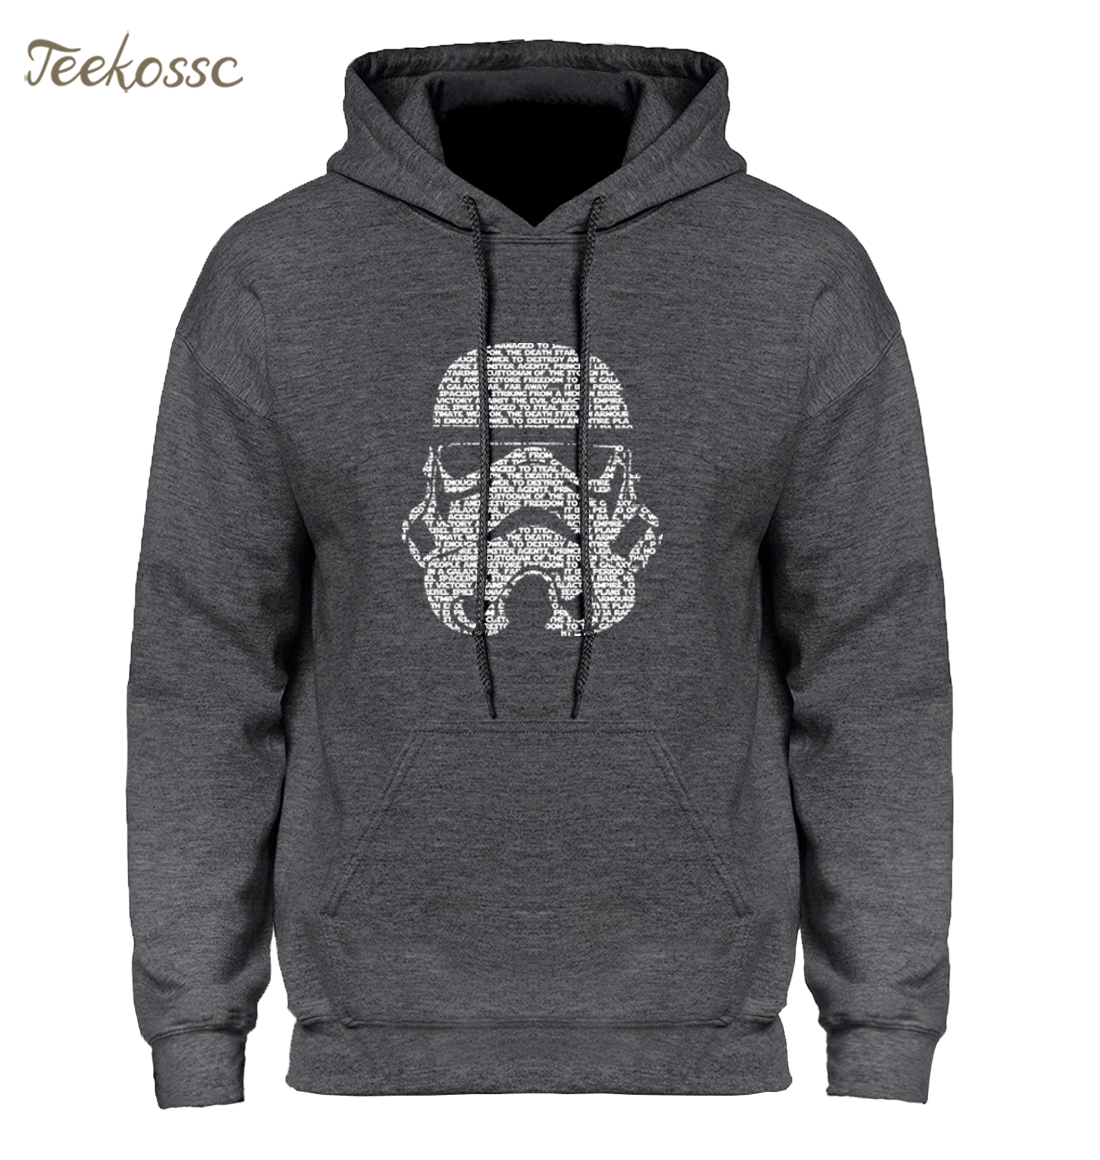 Star Wars Hoodie Men 2018 Hot Winter Autumn Hooded Sweatshirts Hoody Hoodies Sweatshirt Mens Starwars Clothing For Movie Fans